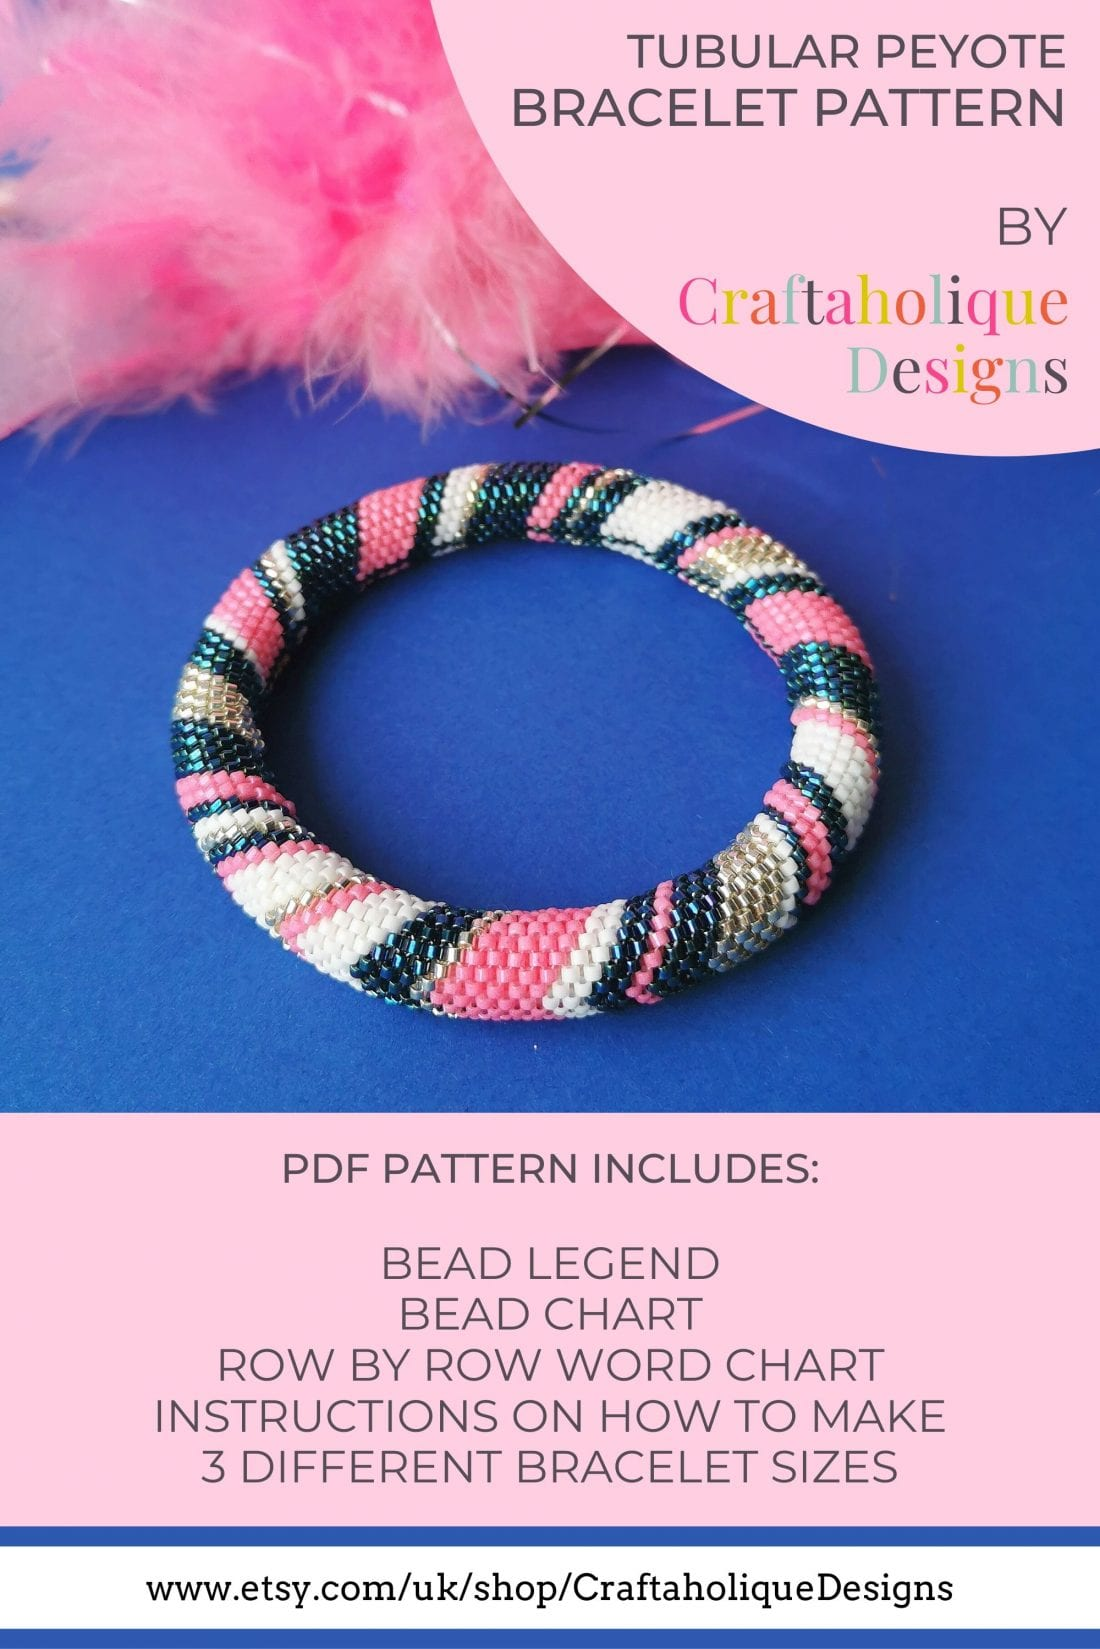 Tubular peyote bracelet pattern blue pink chevron